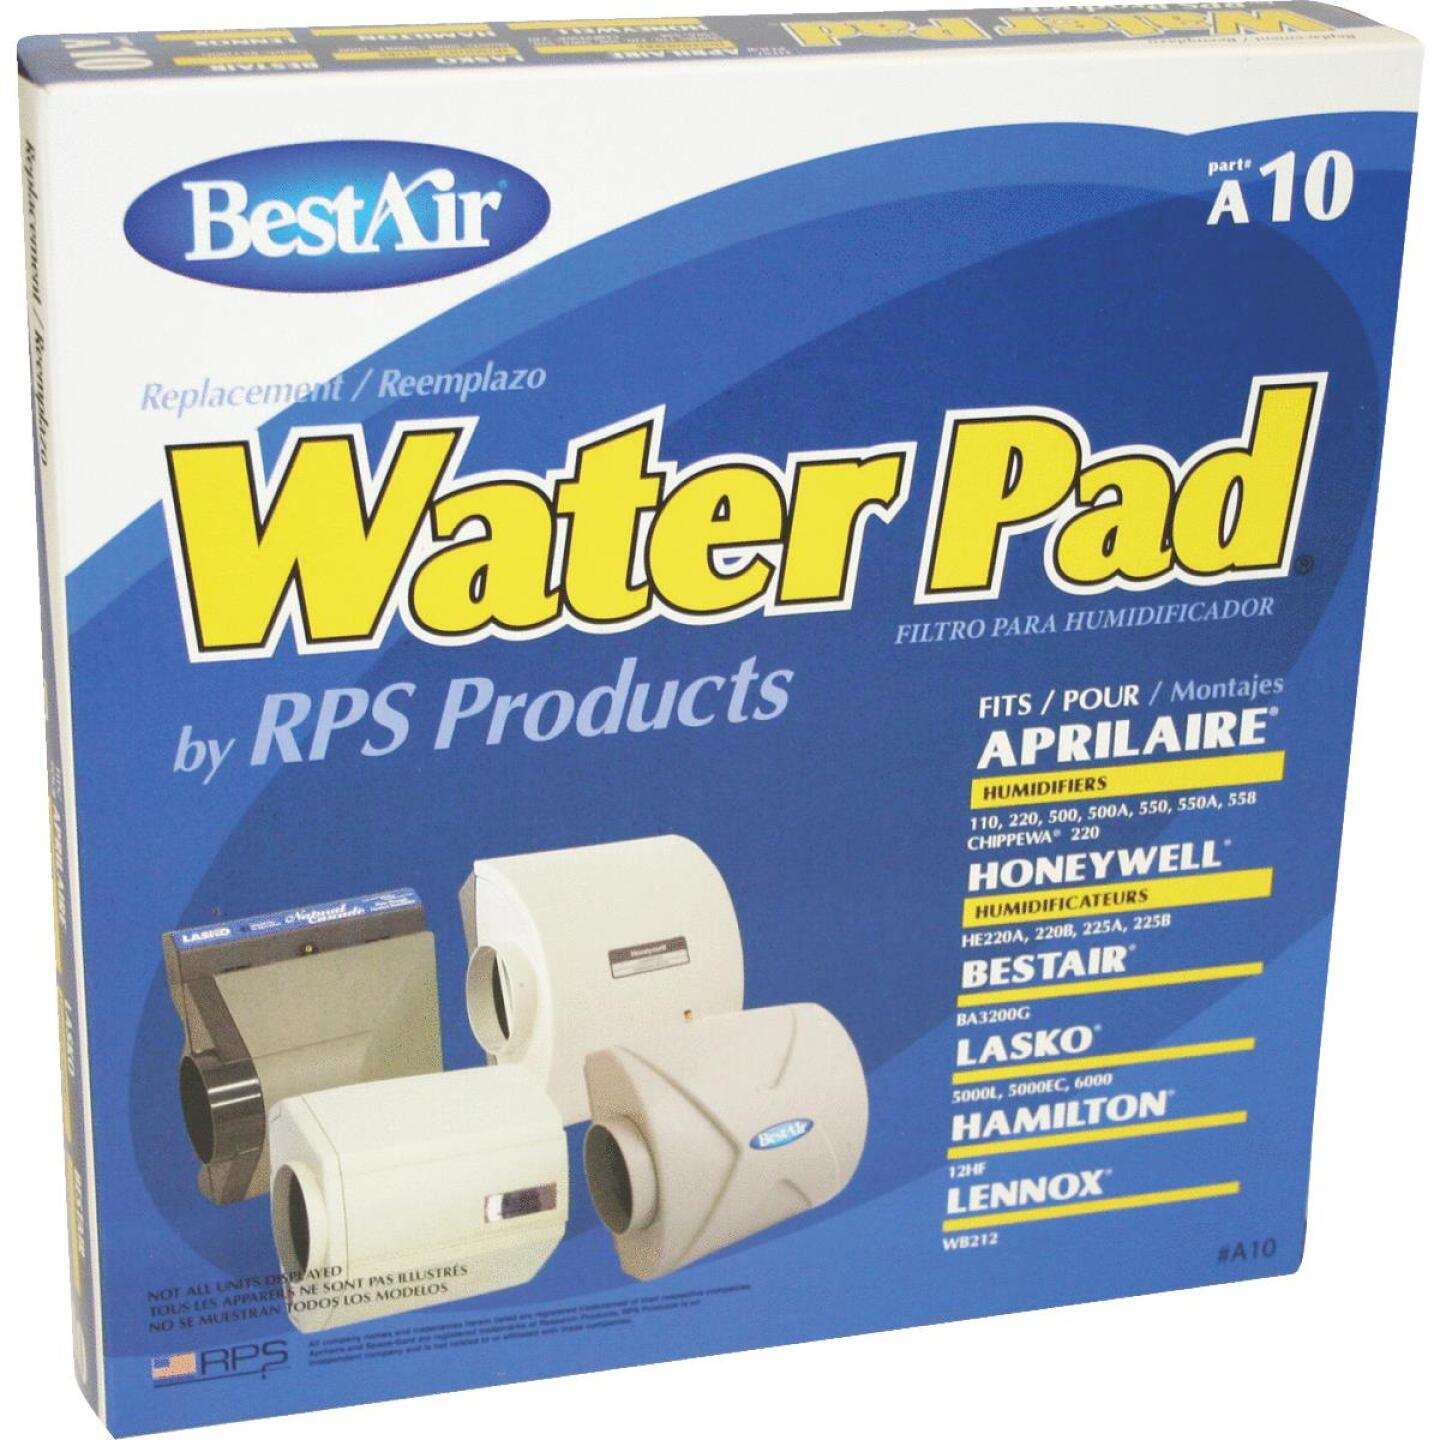 BestAir WaterPad A10 Humidifier Wick Filter Image 1